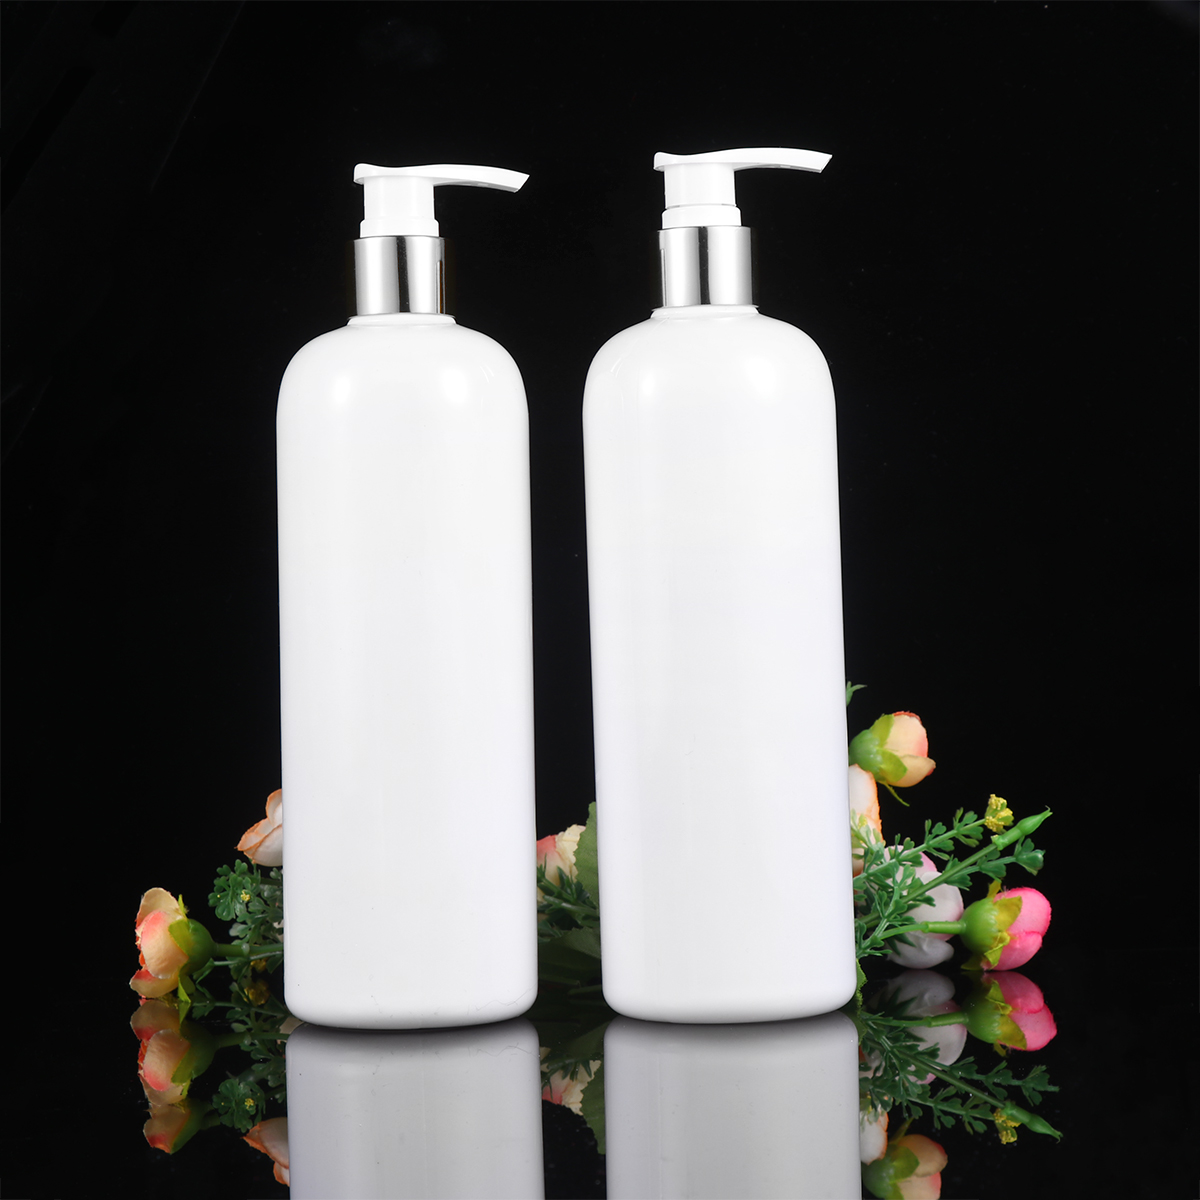 3PCS 500ml Refillable Plastic Bottle Empty Pump Bottle Travel Dispenser For Shampoo Shower Gel Liquid Soap (White, Silver White)